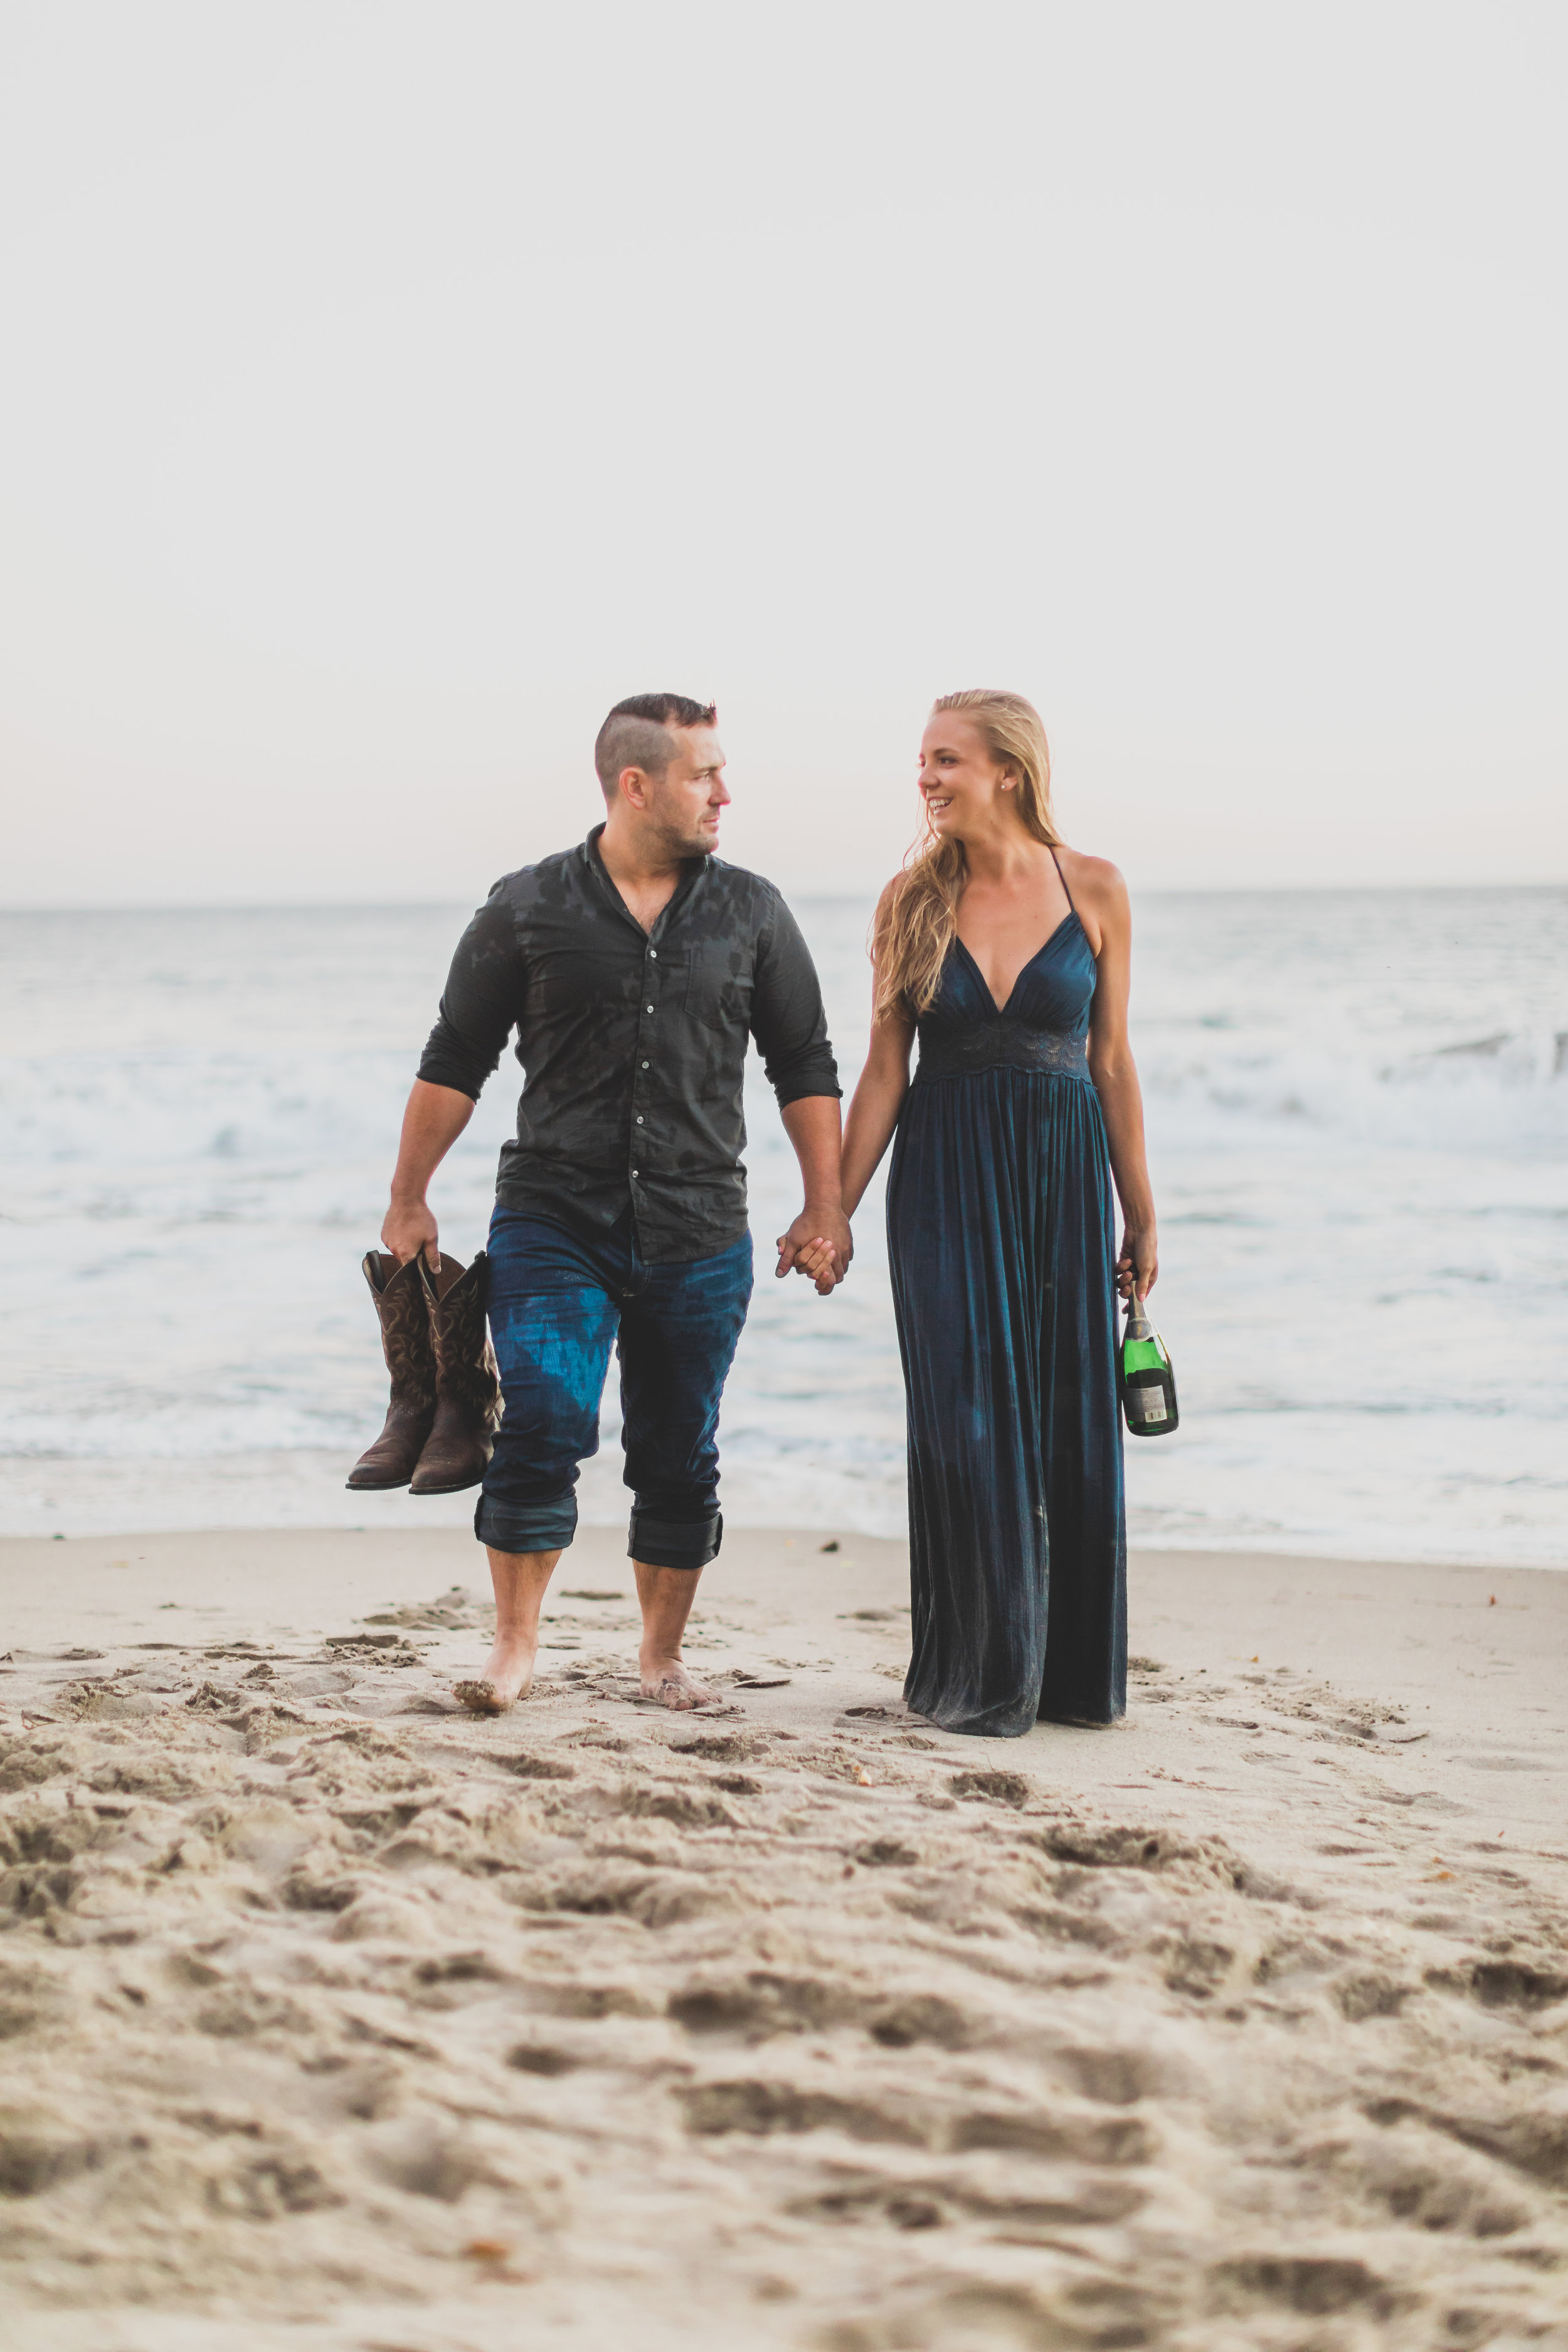 A couple holding their shoes and a champagne bottle as they walk barefoot in the sand.